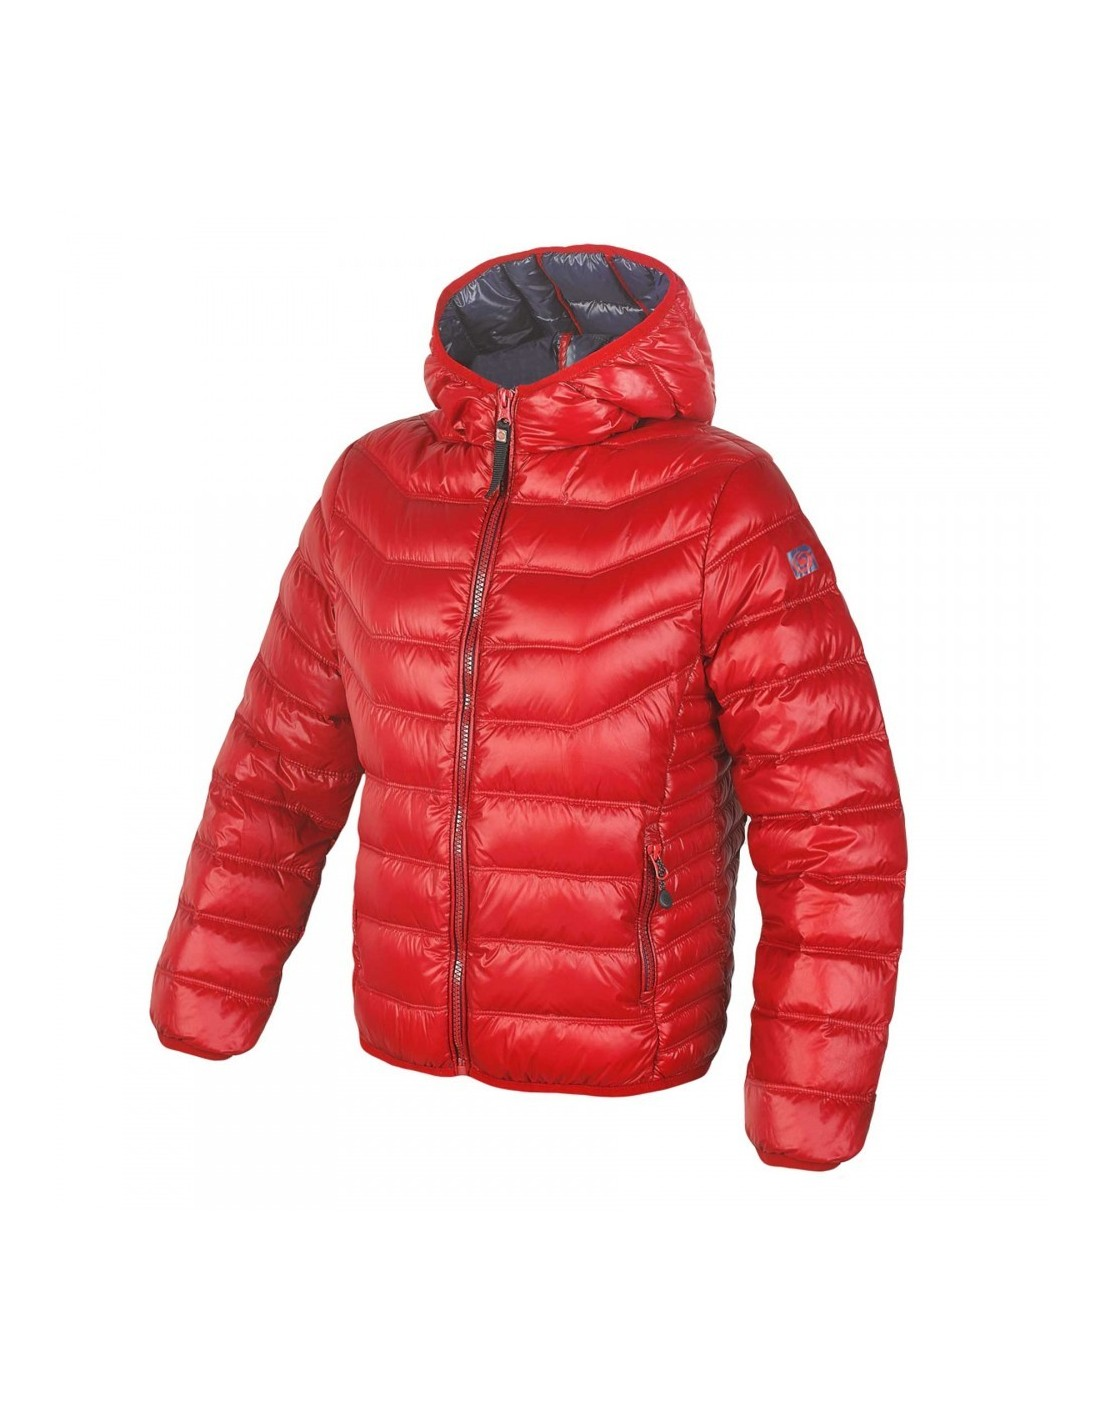 buy popular b8e37 b7766 Piumino Brekka Holiday Down Jacket Man - Bettineschi Sport